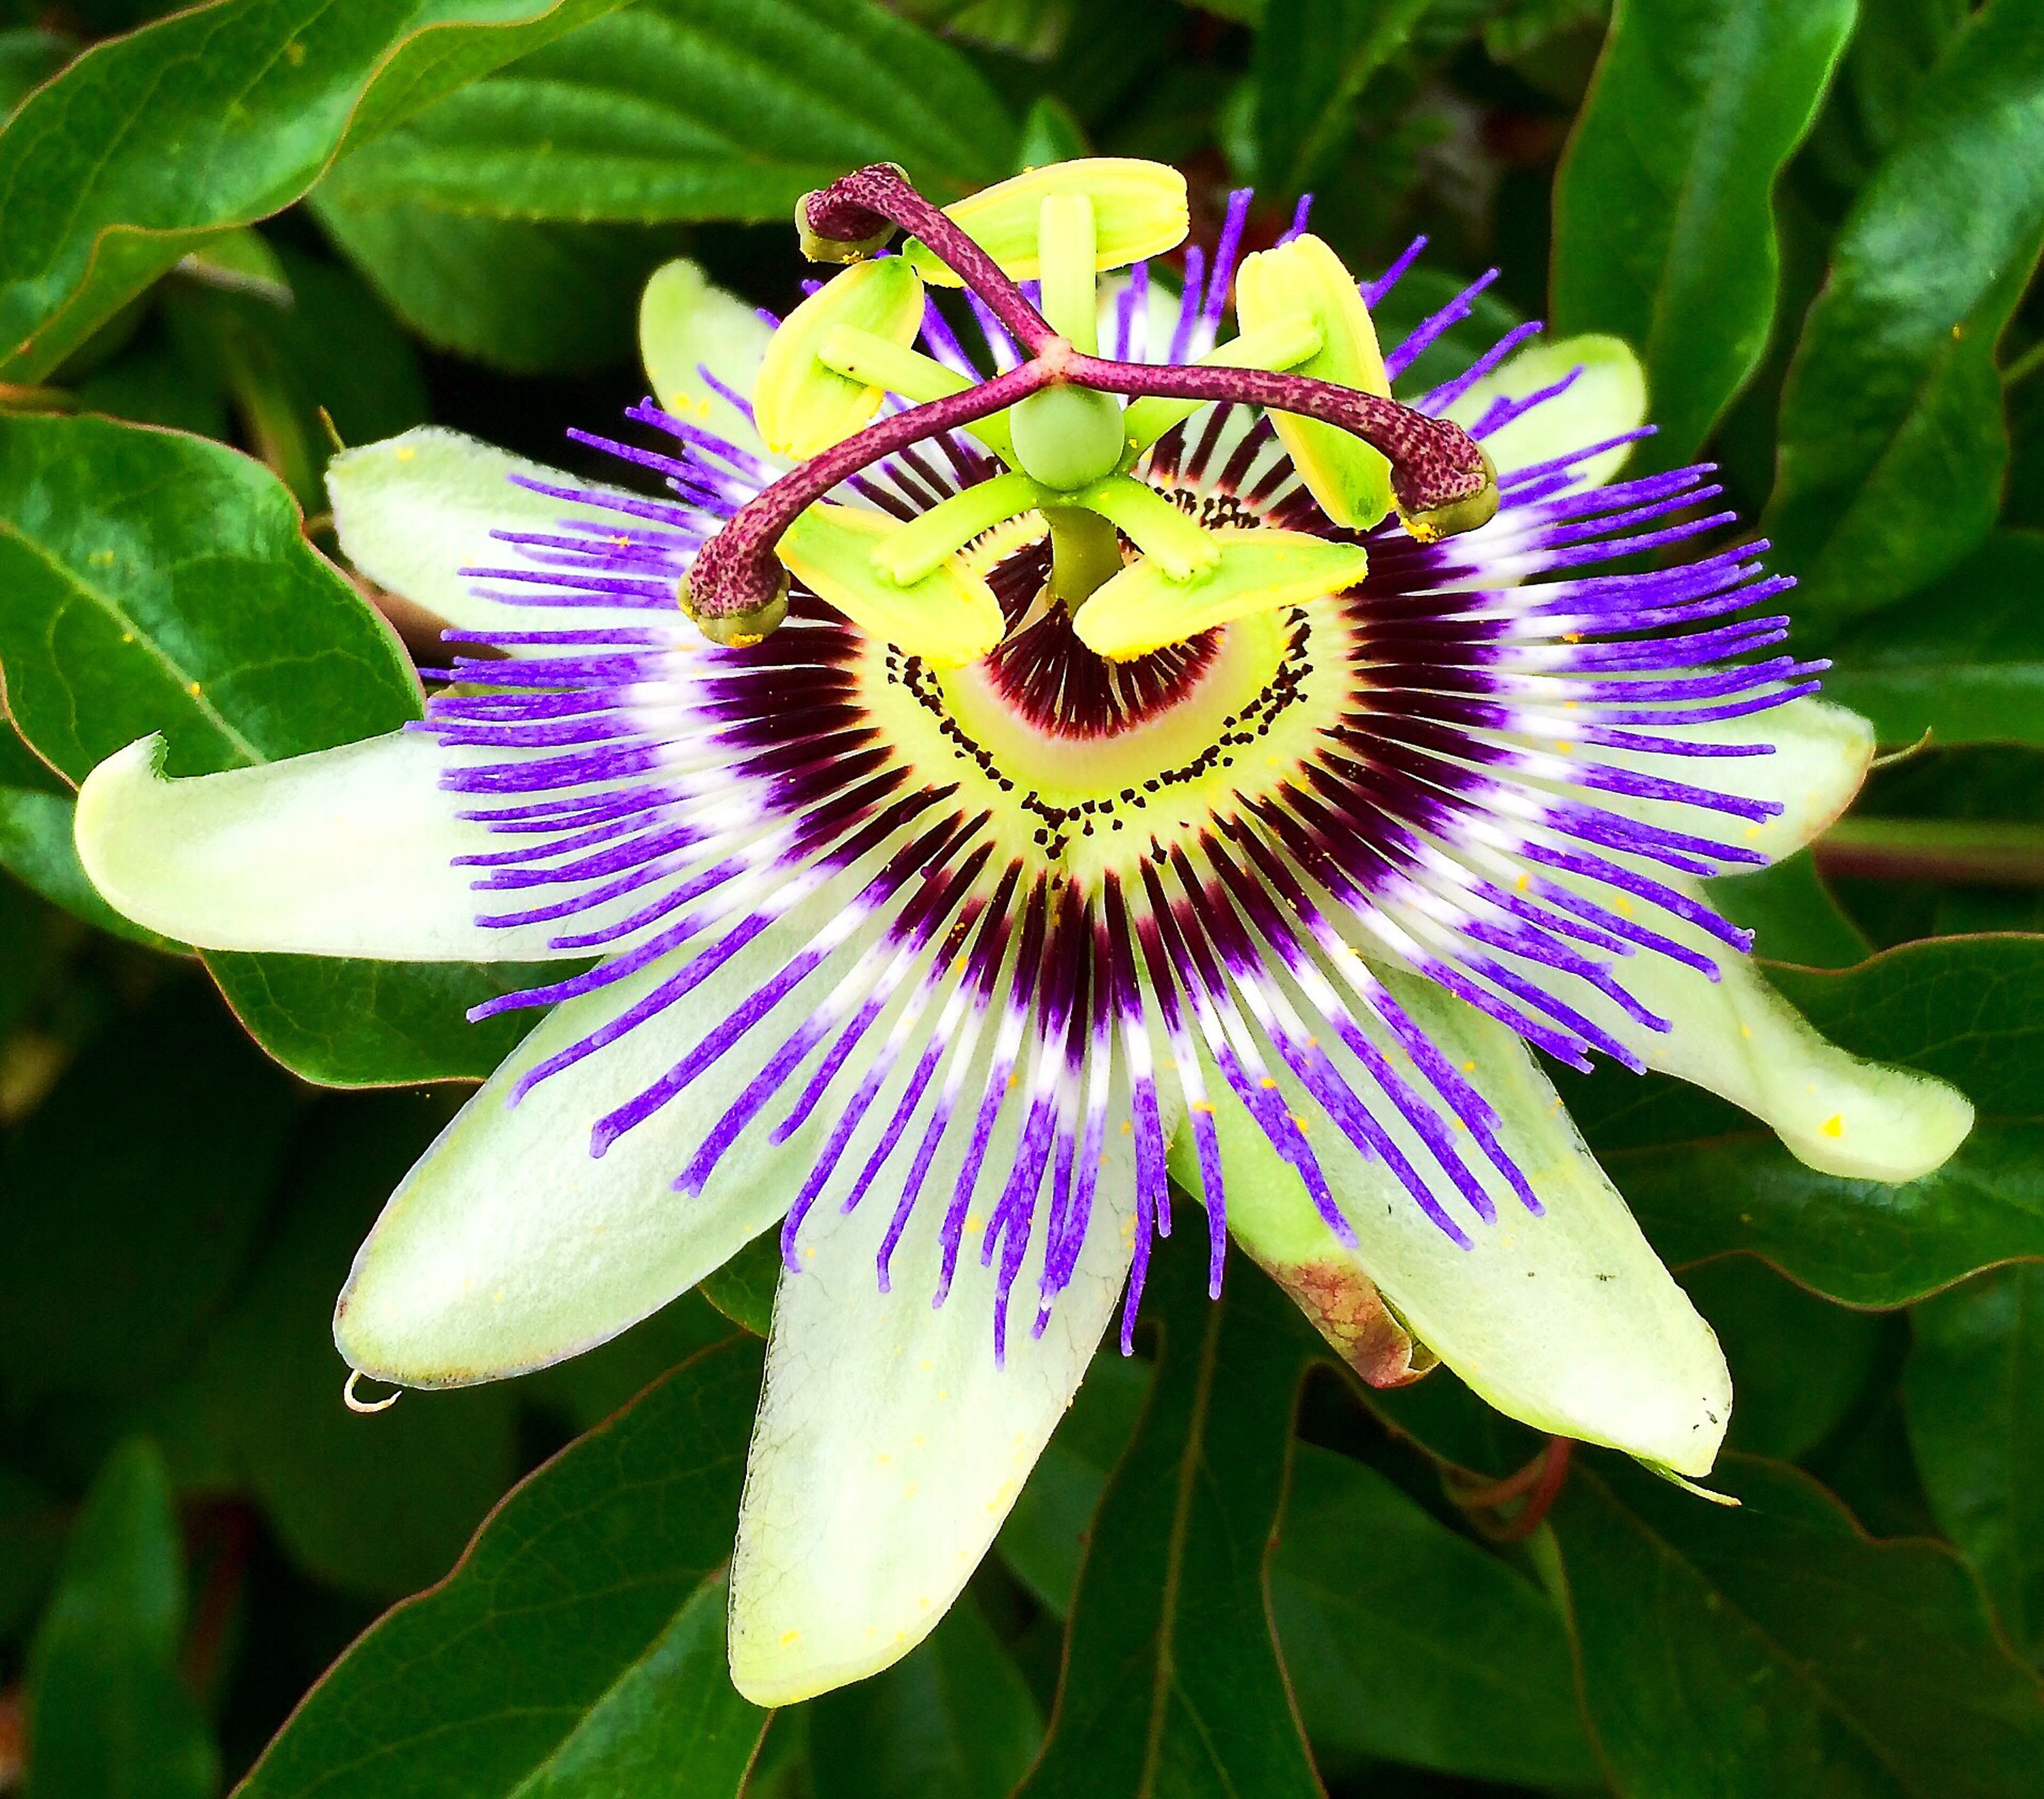 flower, freshness, fragility, petal, flower head, growth, passion flower, single flower, close-up, beauty in nature, leaf, plant, nature, stamen, in bloom, purple, pollen, green color, blossom, botany, macro, springtime, focus on foreground, day, pollination, growing, blooming